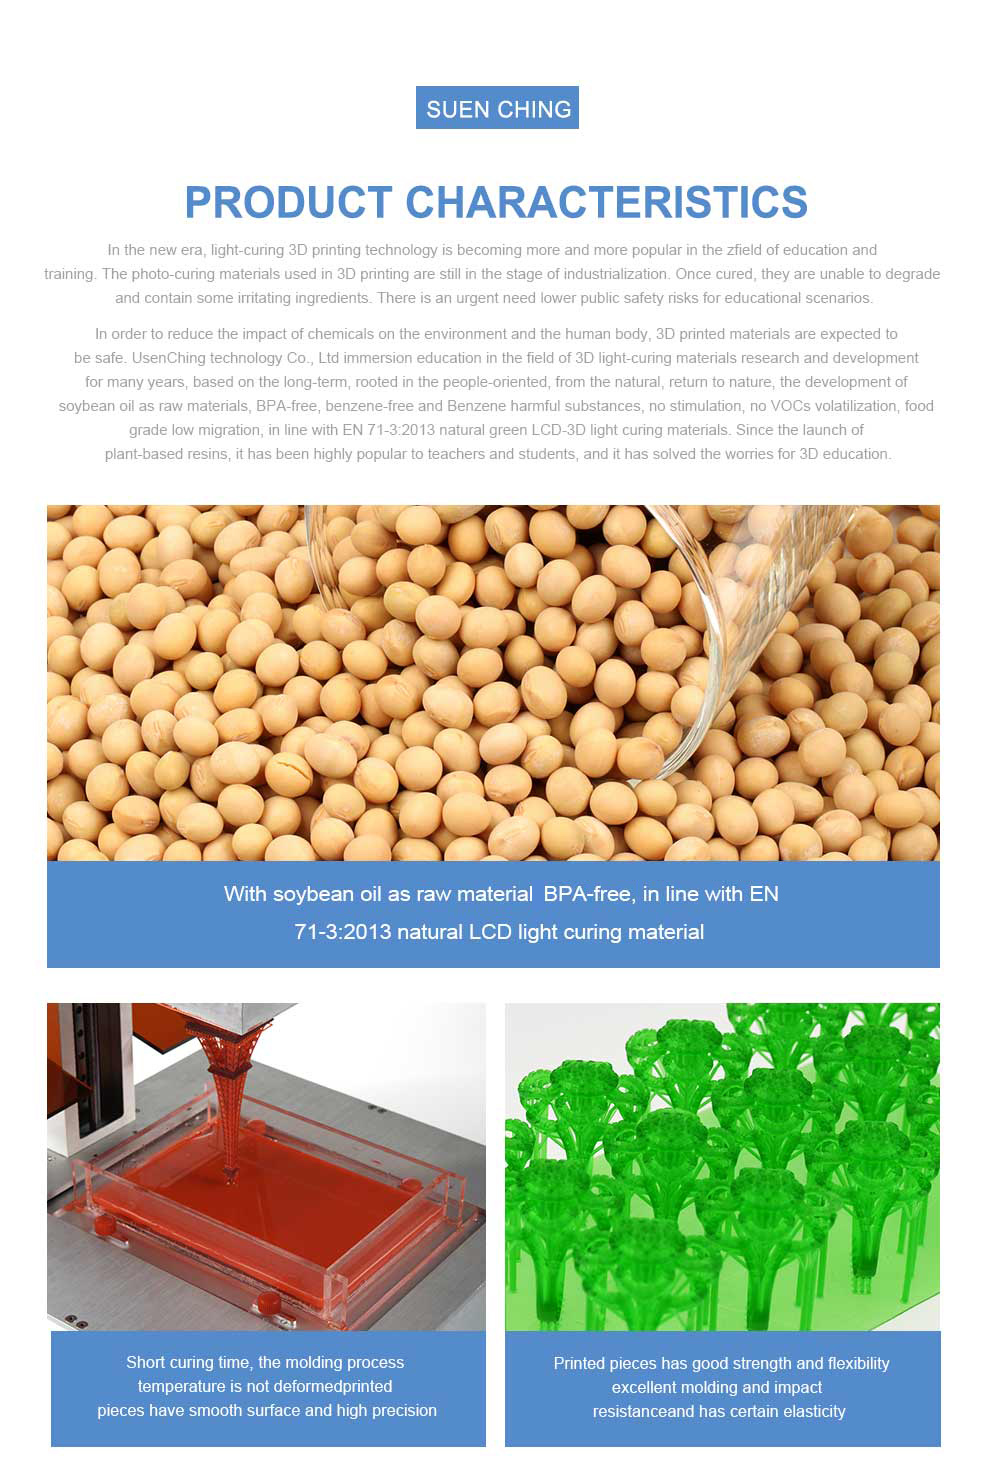 Rapid LCD UV-Curing 405nm Soybean Oil Resin for 3D Printing